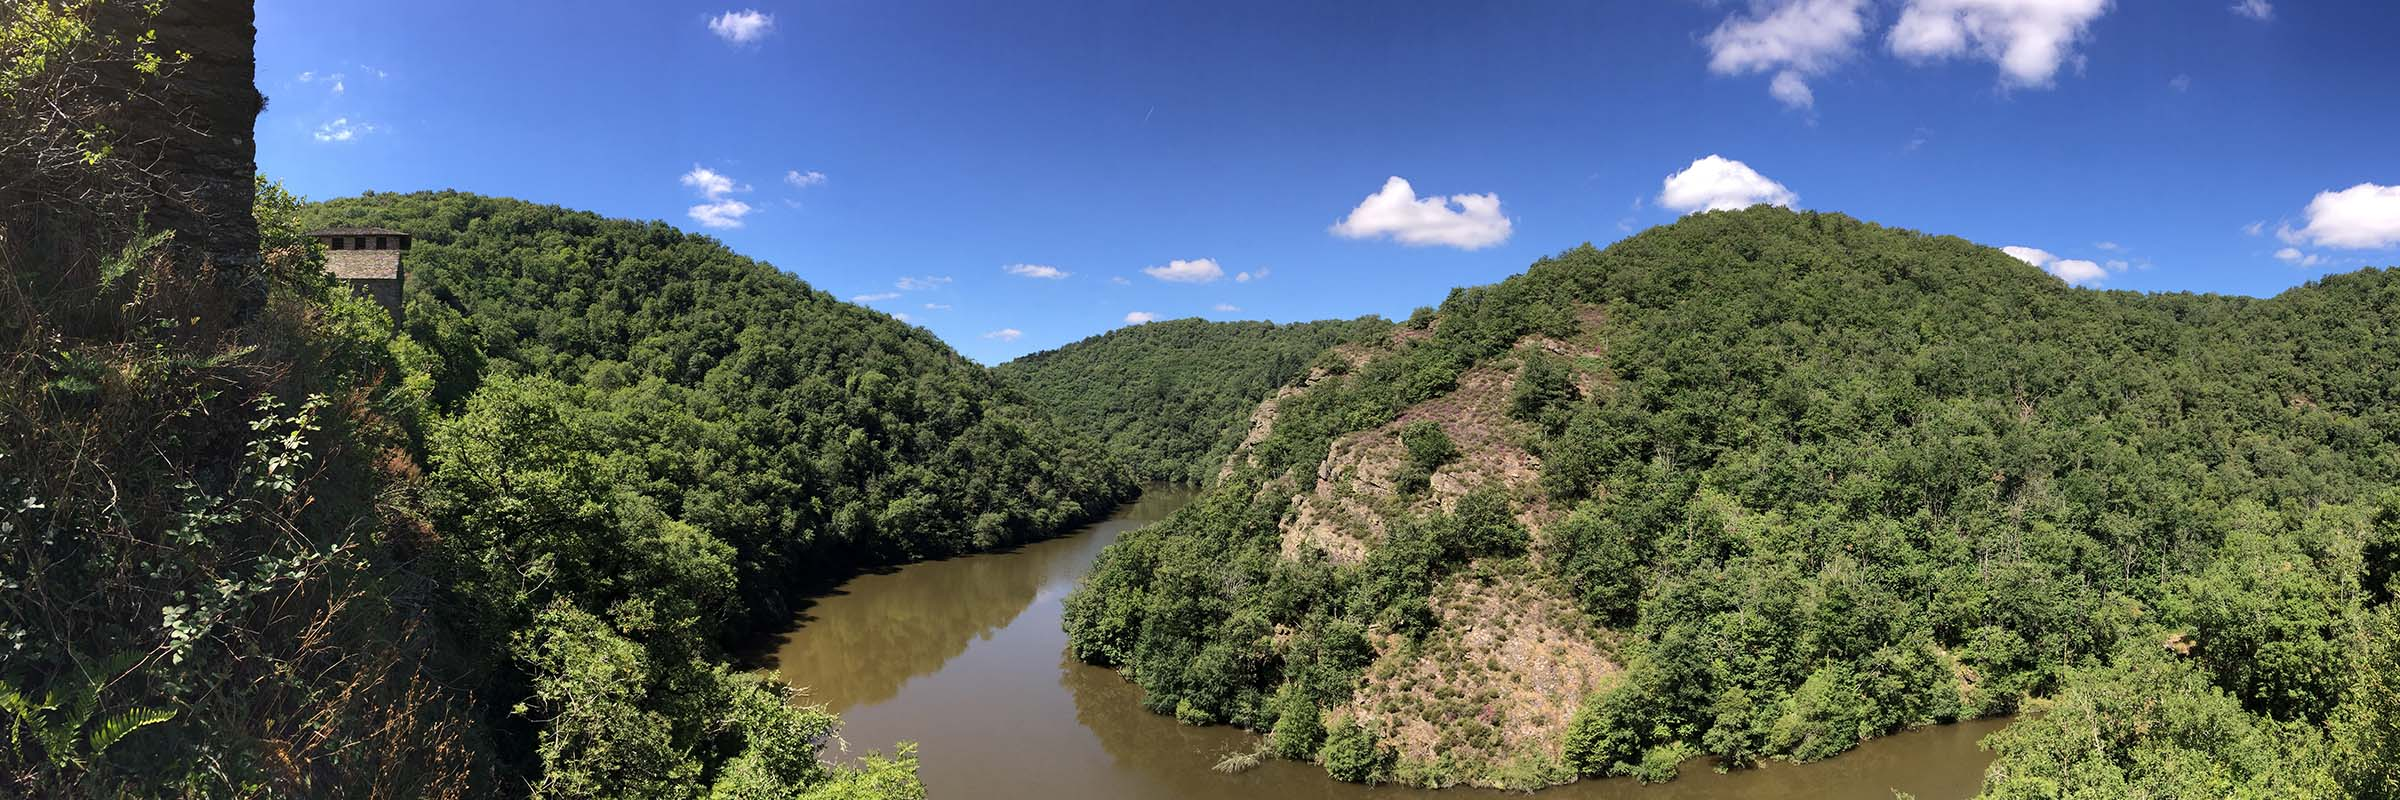 Panoramic view of the Viaur river with Las Plaques overlooking high on the left